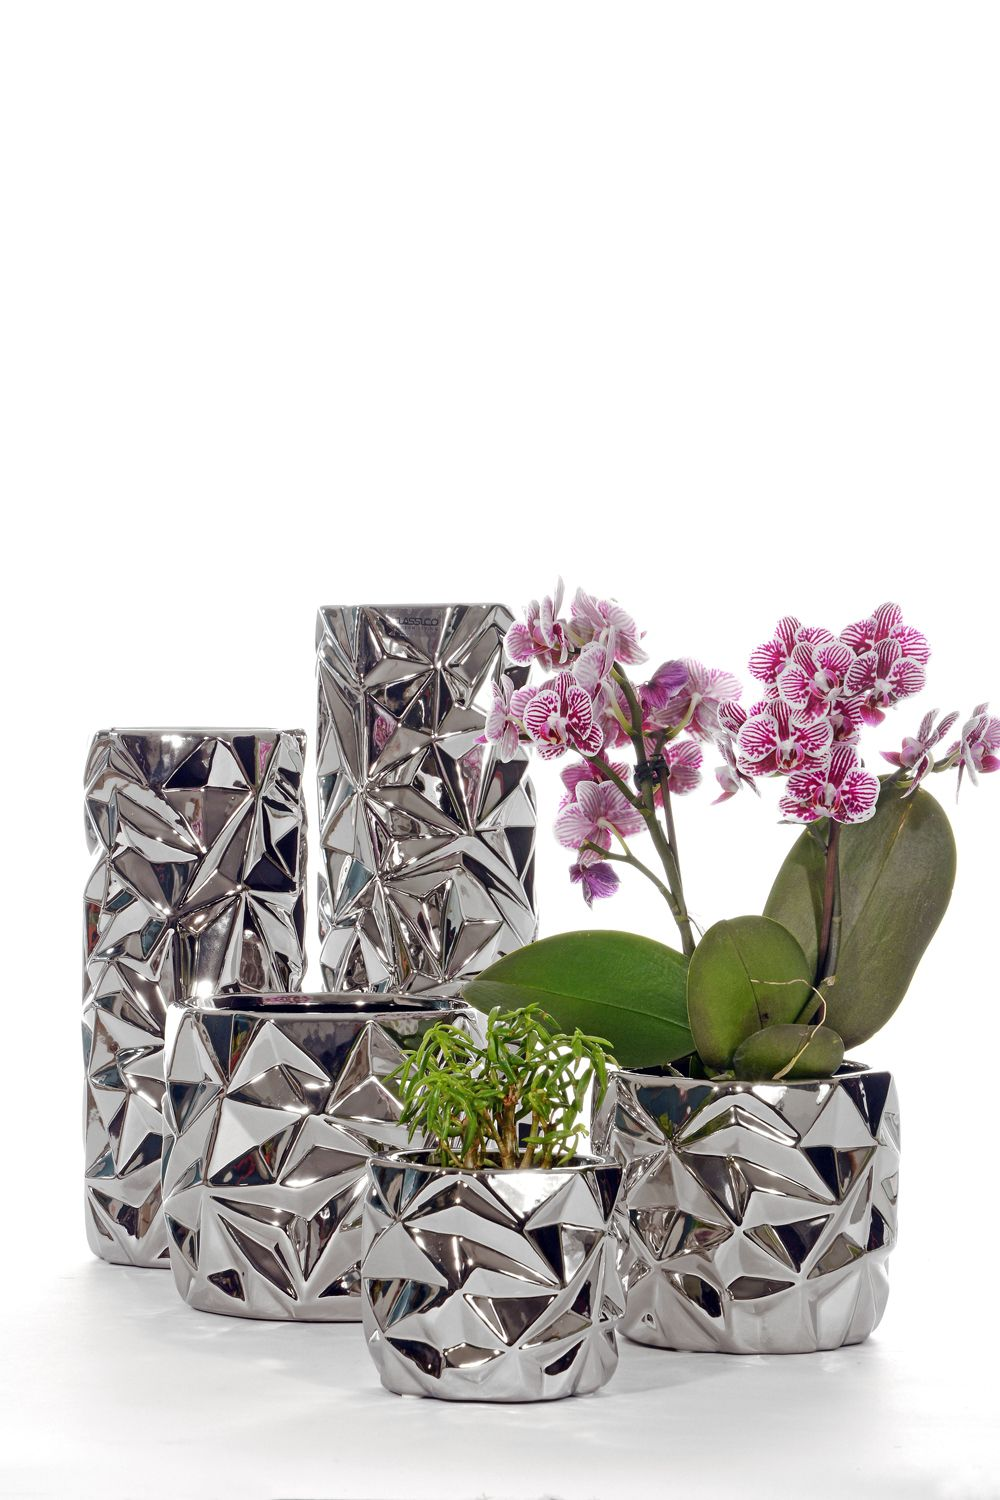 Display your favourite plants in style with this Classico